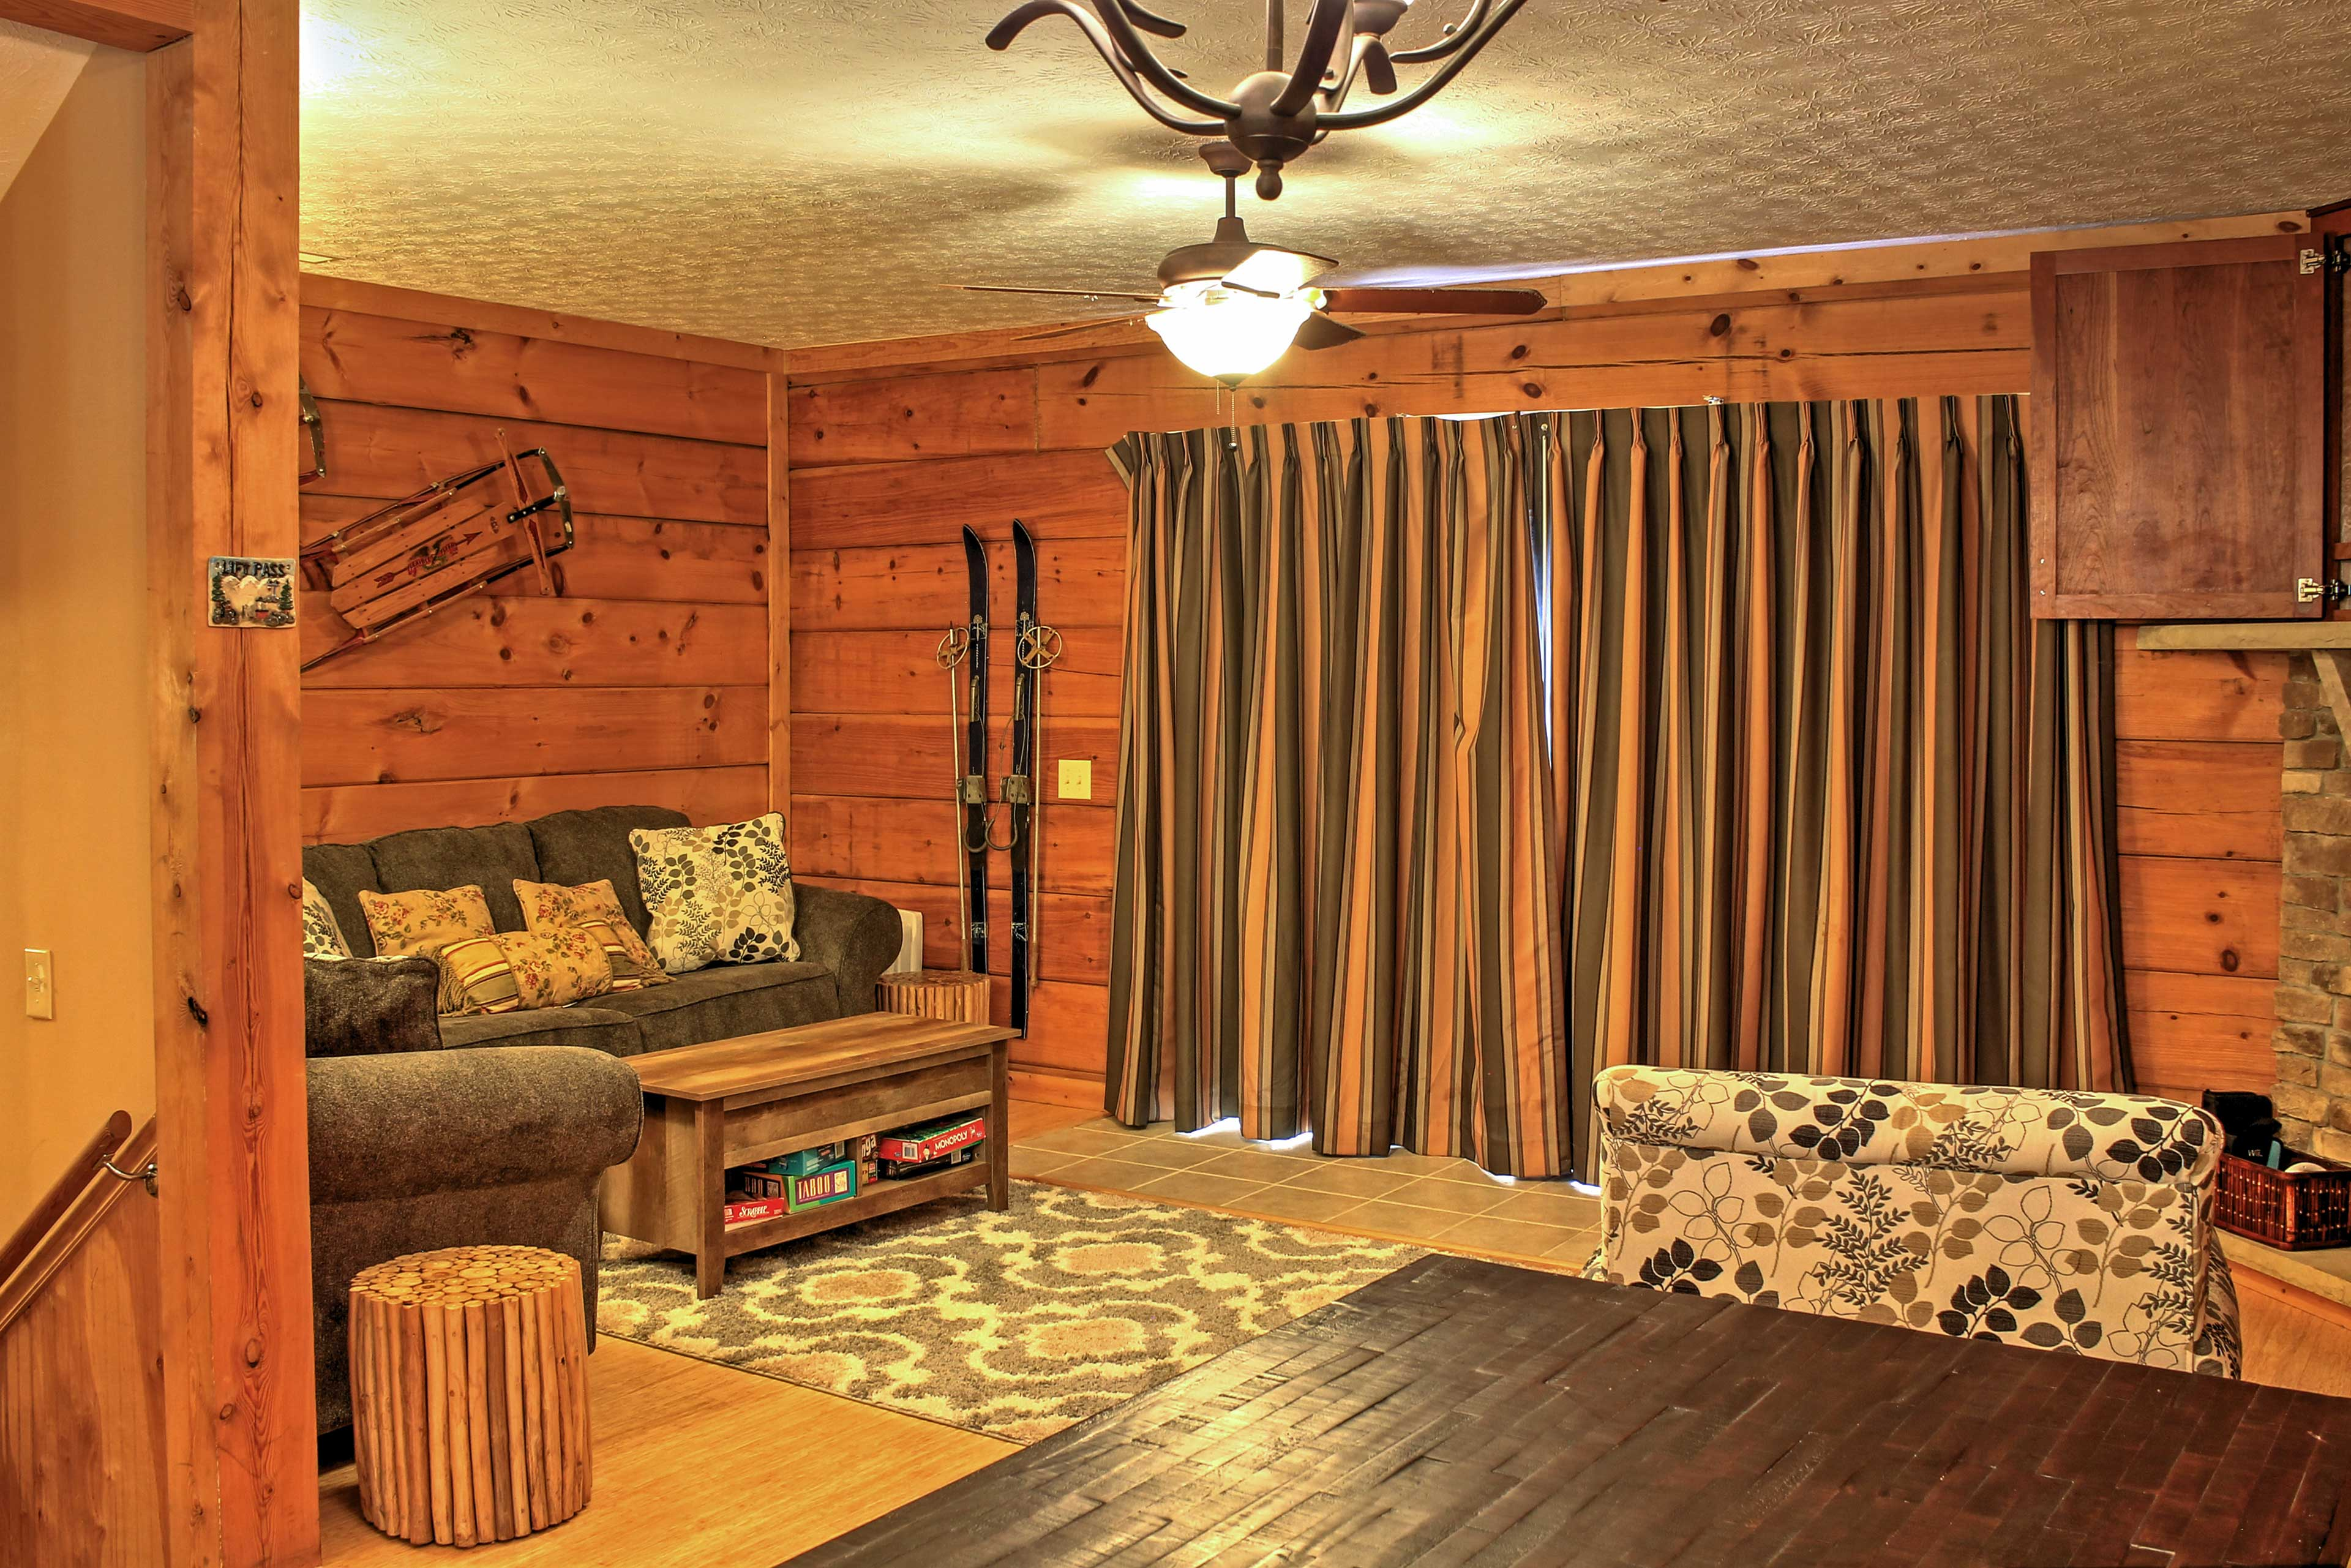 Living Room | Central Air Conditioning & Heat